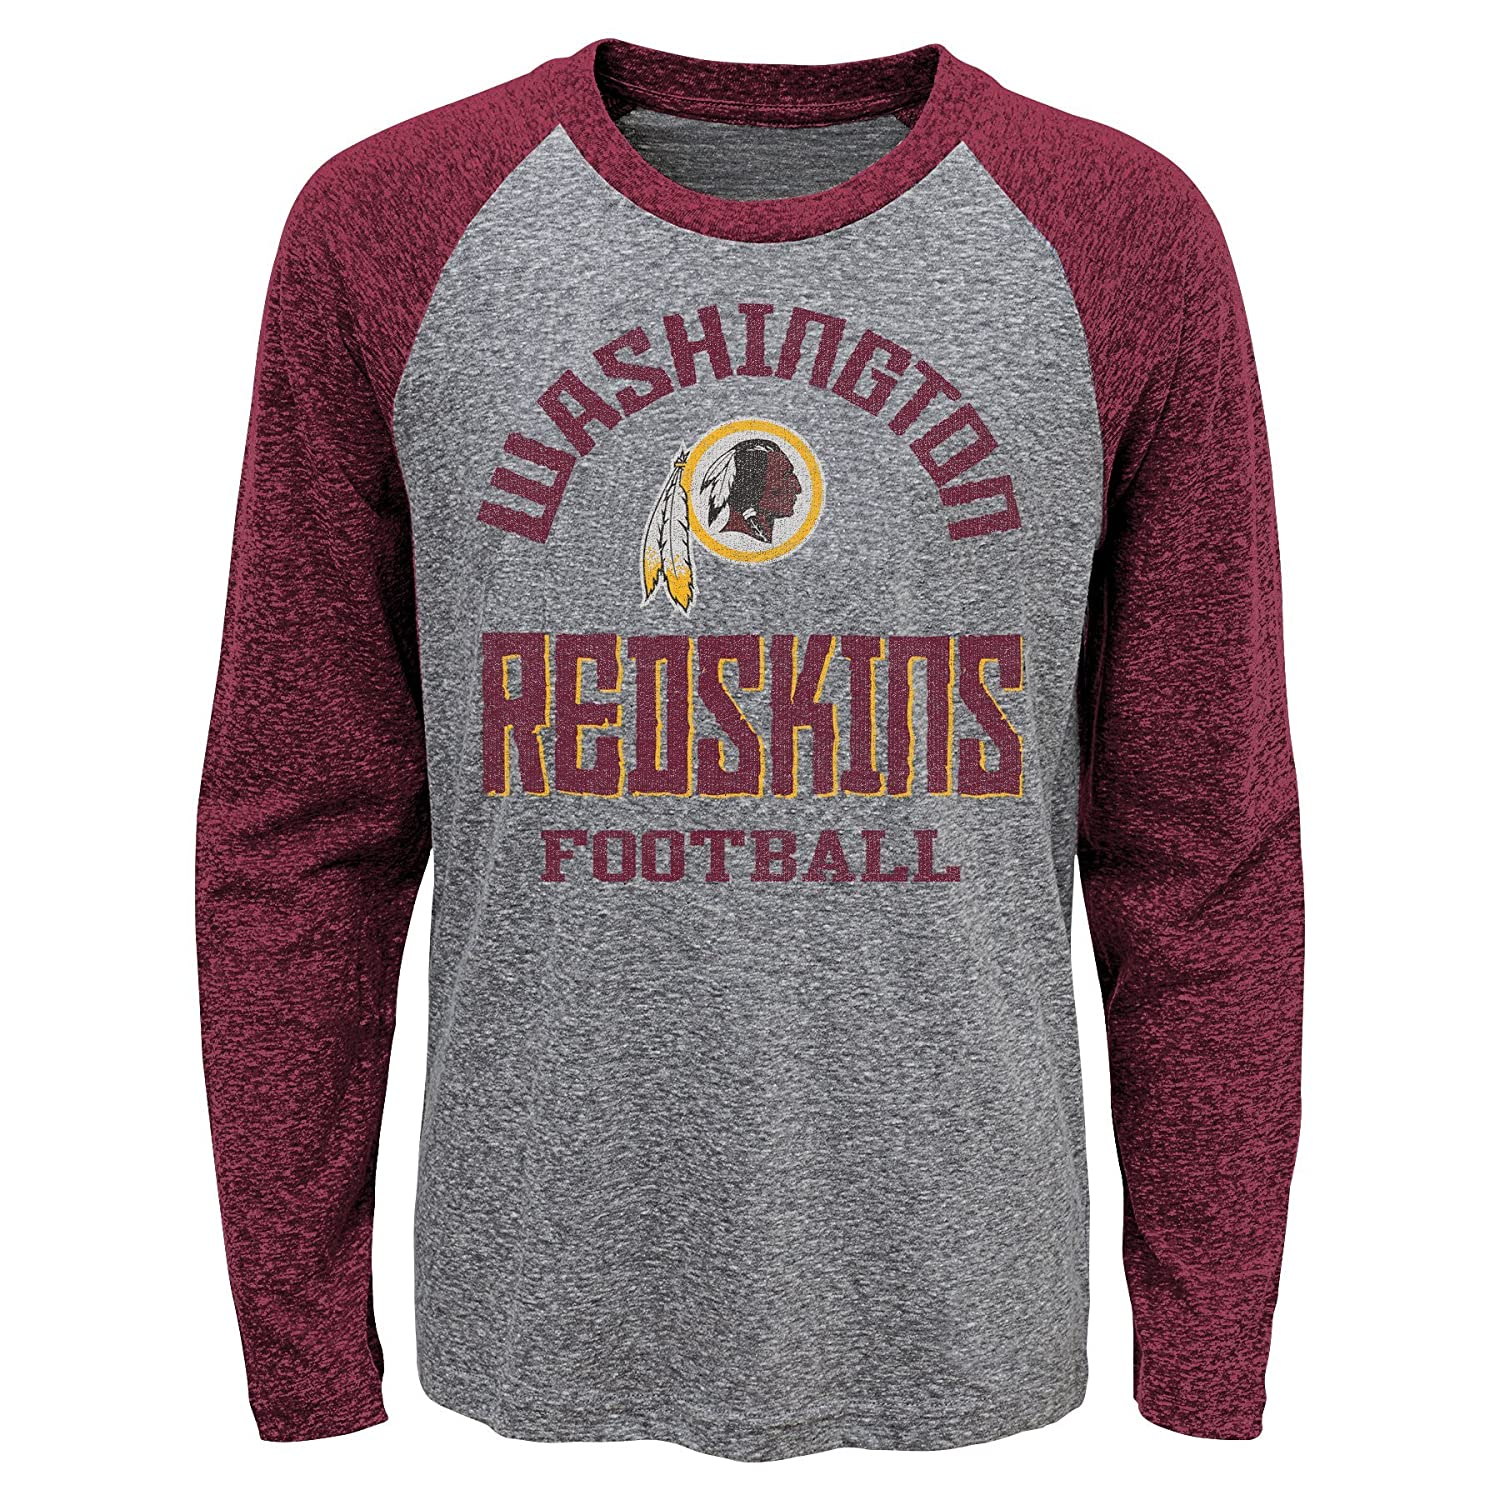 Outerstuff NFL Washington Redskins Kids Classic Gridiron Long Sleeve Raglan Tee Dark Grey Heather Kids Large 7